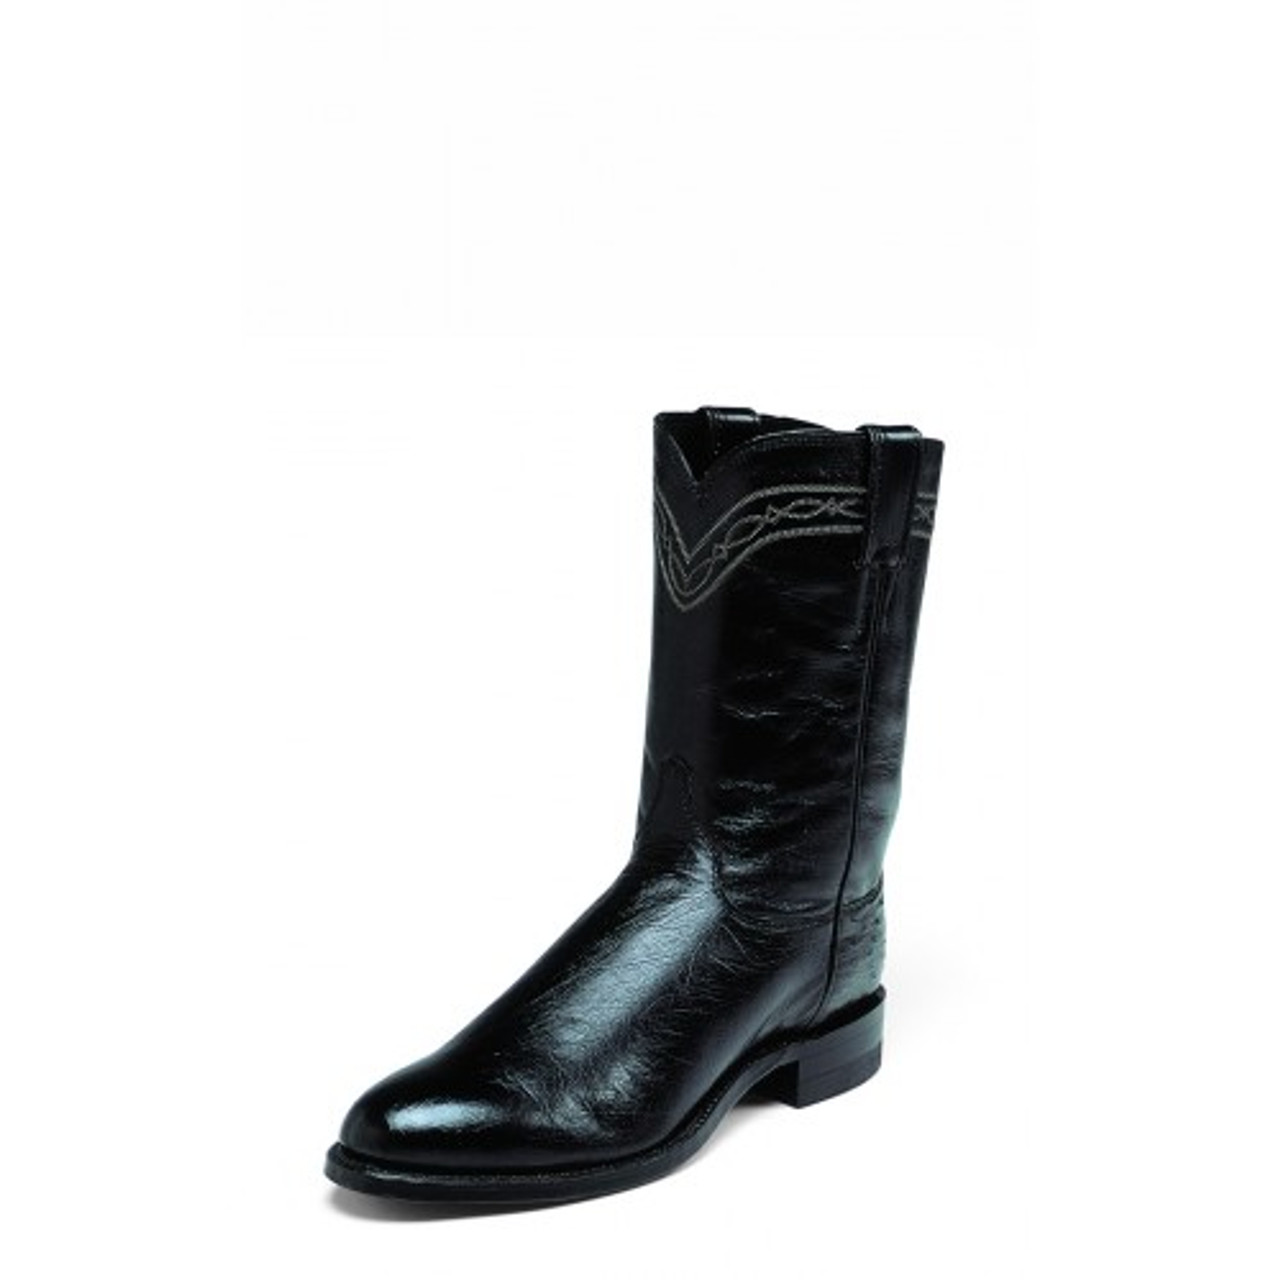 727cd819d50 Justin Men's Exotic Ropers - Brock Black Smooth Ostrich / Black Classic Kid